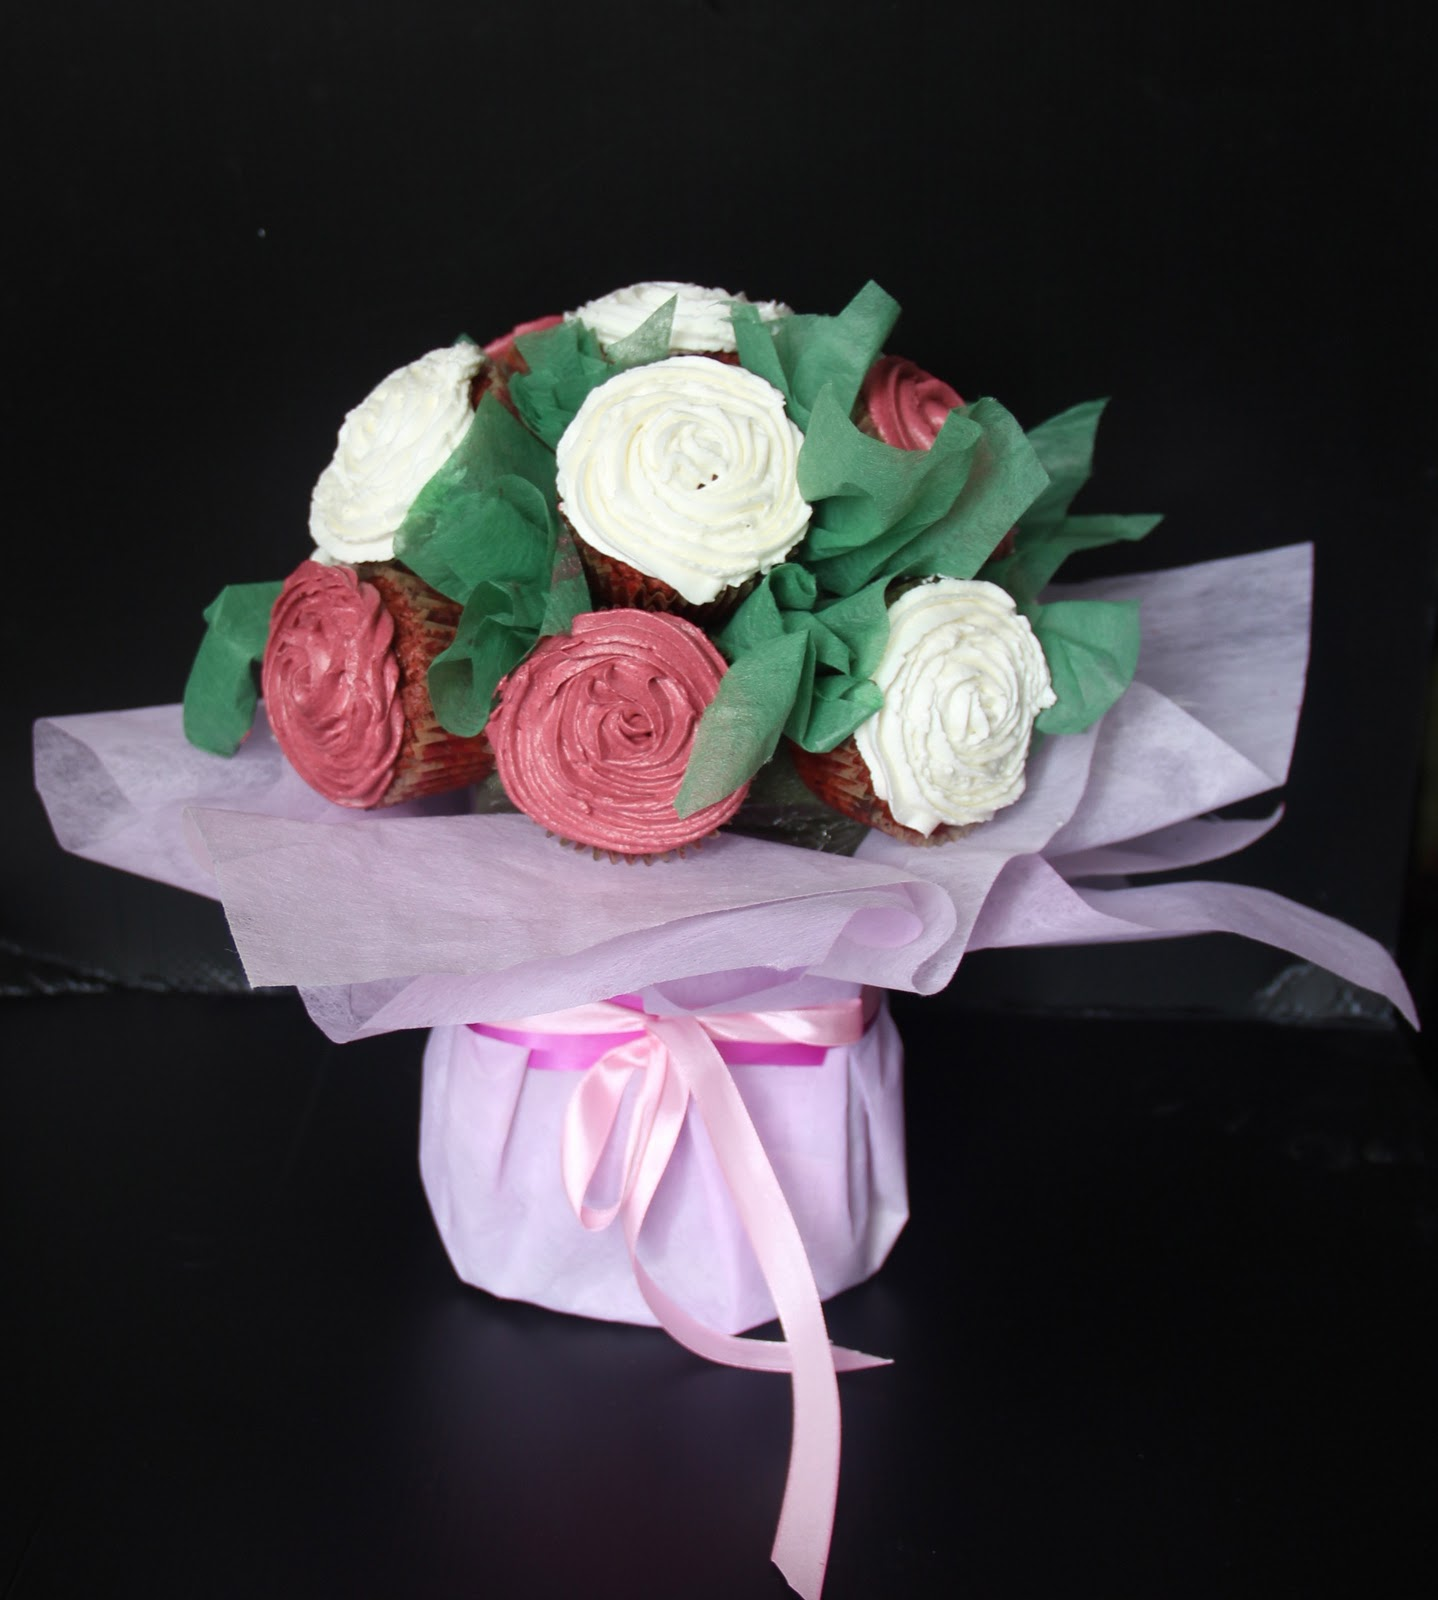 Emas creation flower cupcake bouquet cupcake flower bouquet red valved cupcake frosting with cheese cream izmirmasajfo